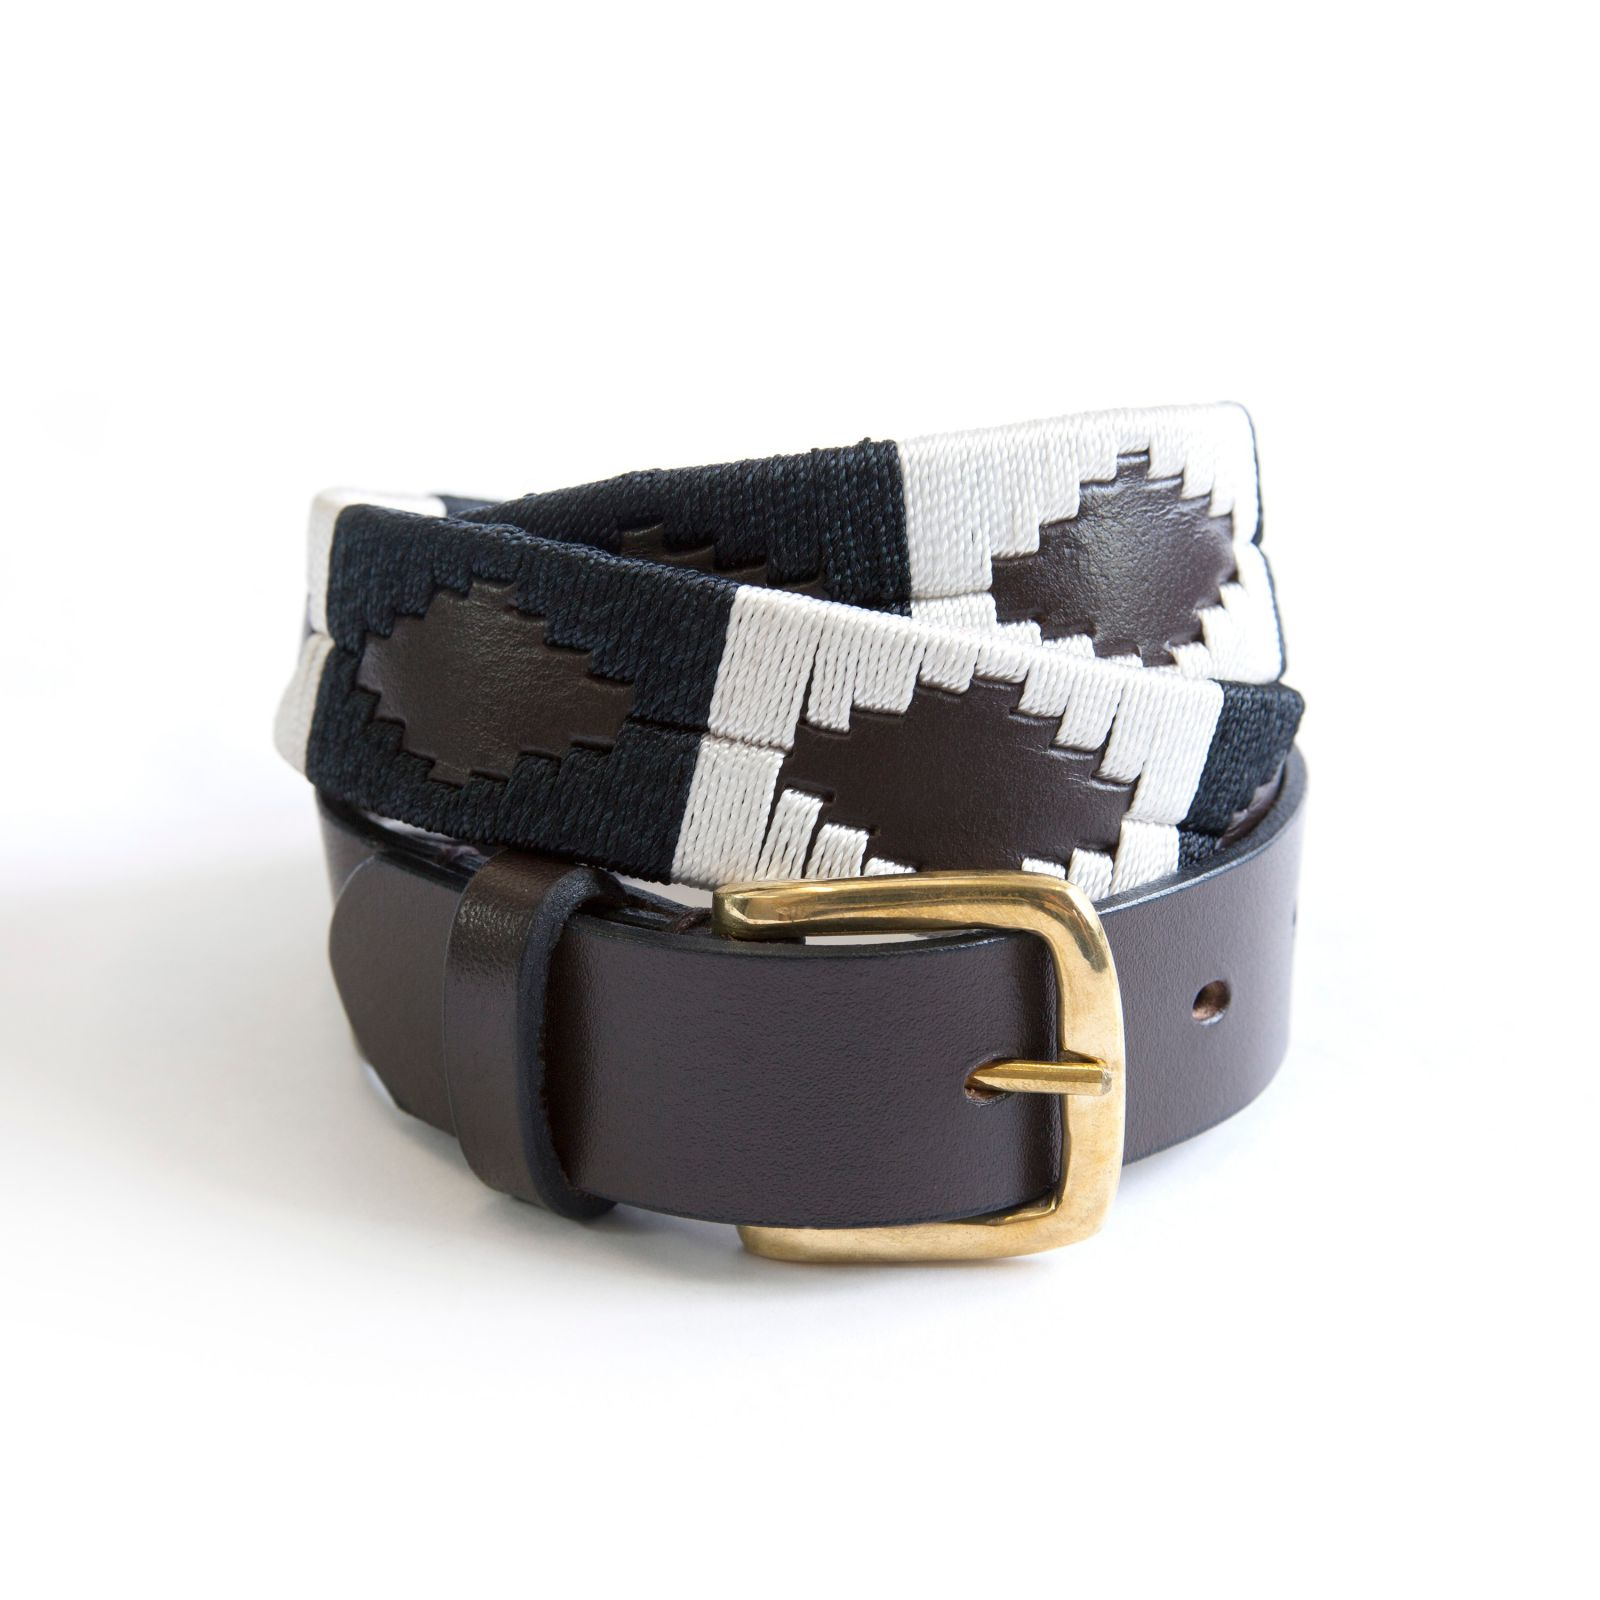 KM Polo Belt - Ebony